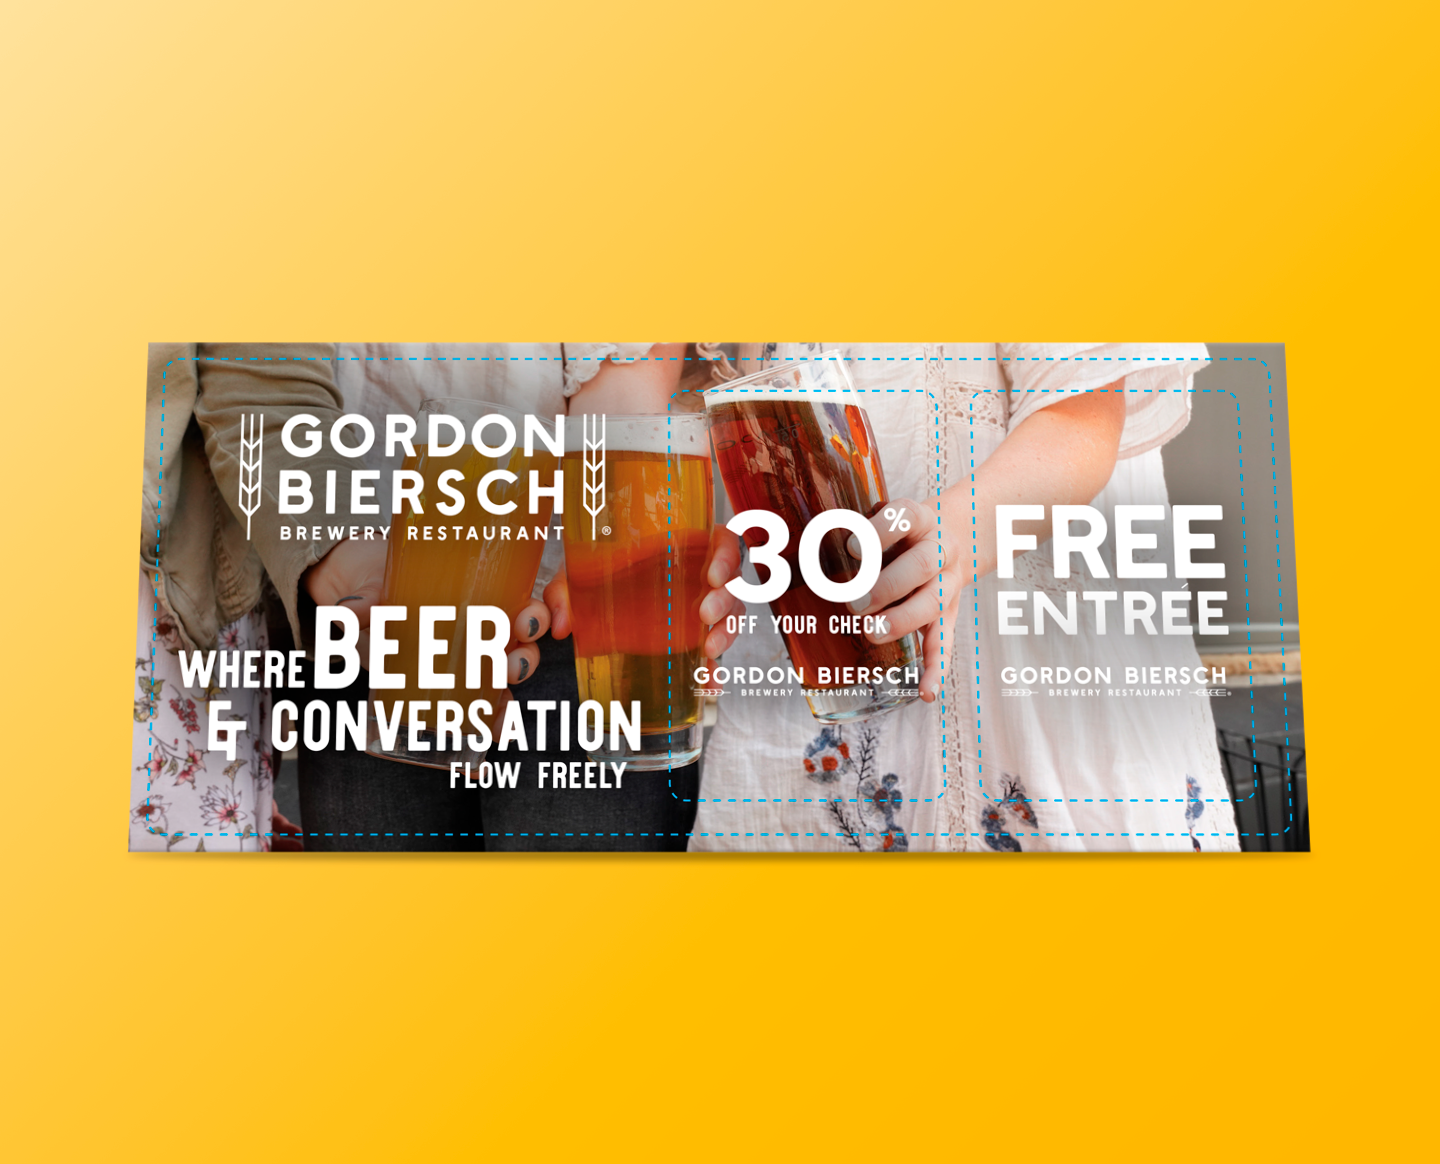 Gordon Biersch coupon advertising discounts